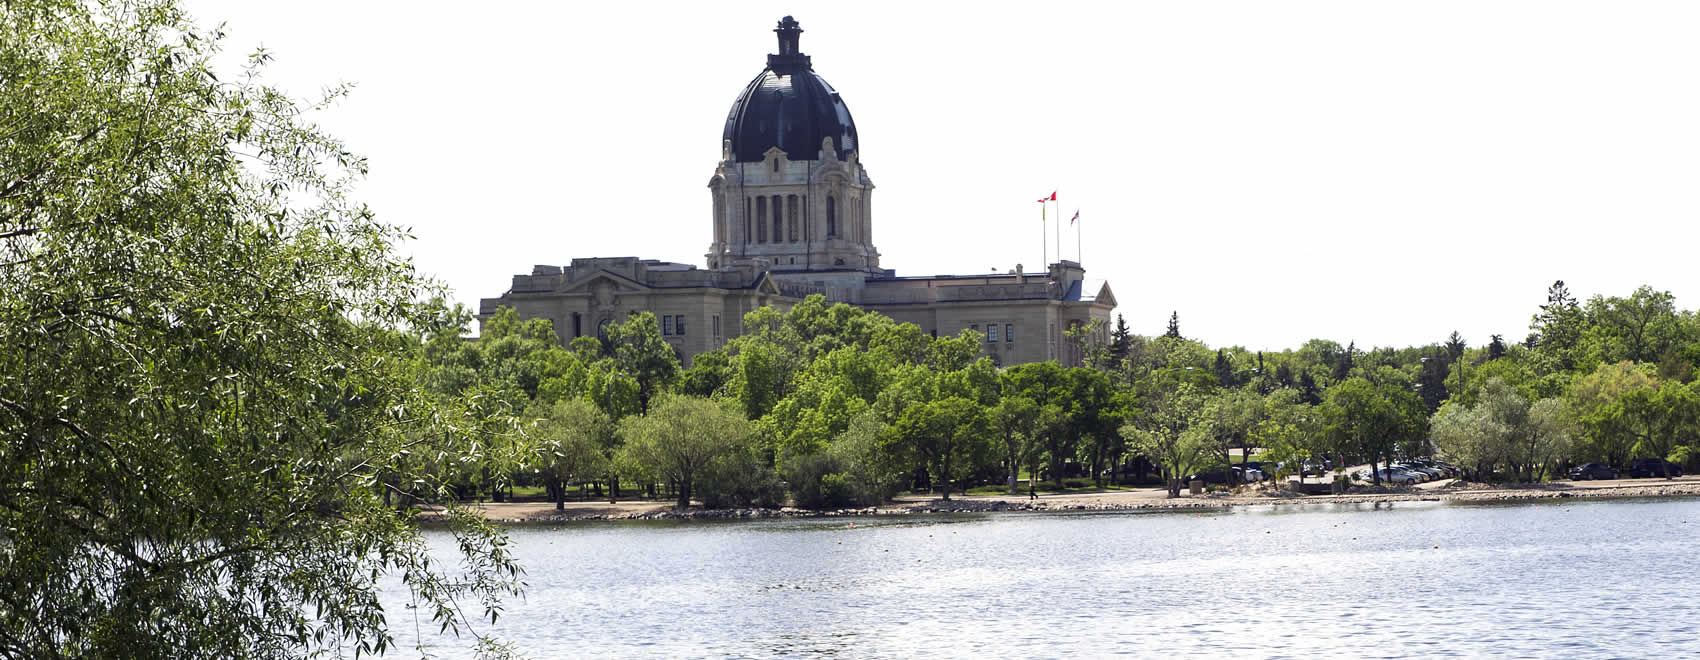 Tourism Regina - Wascana Lake and Provincial Legislature